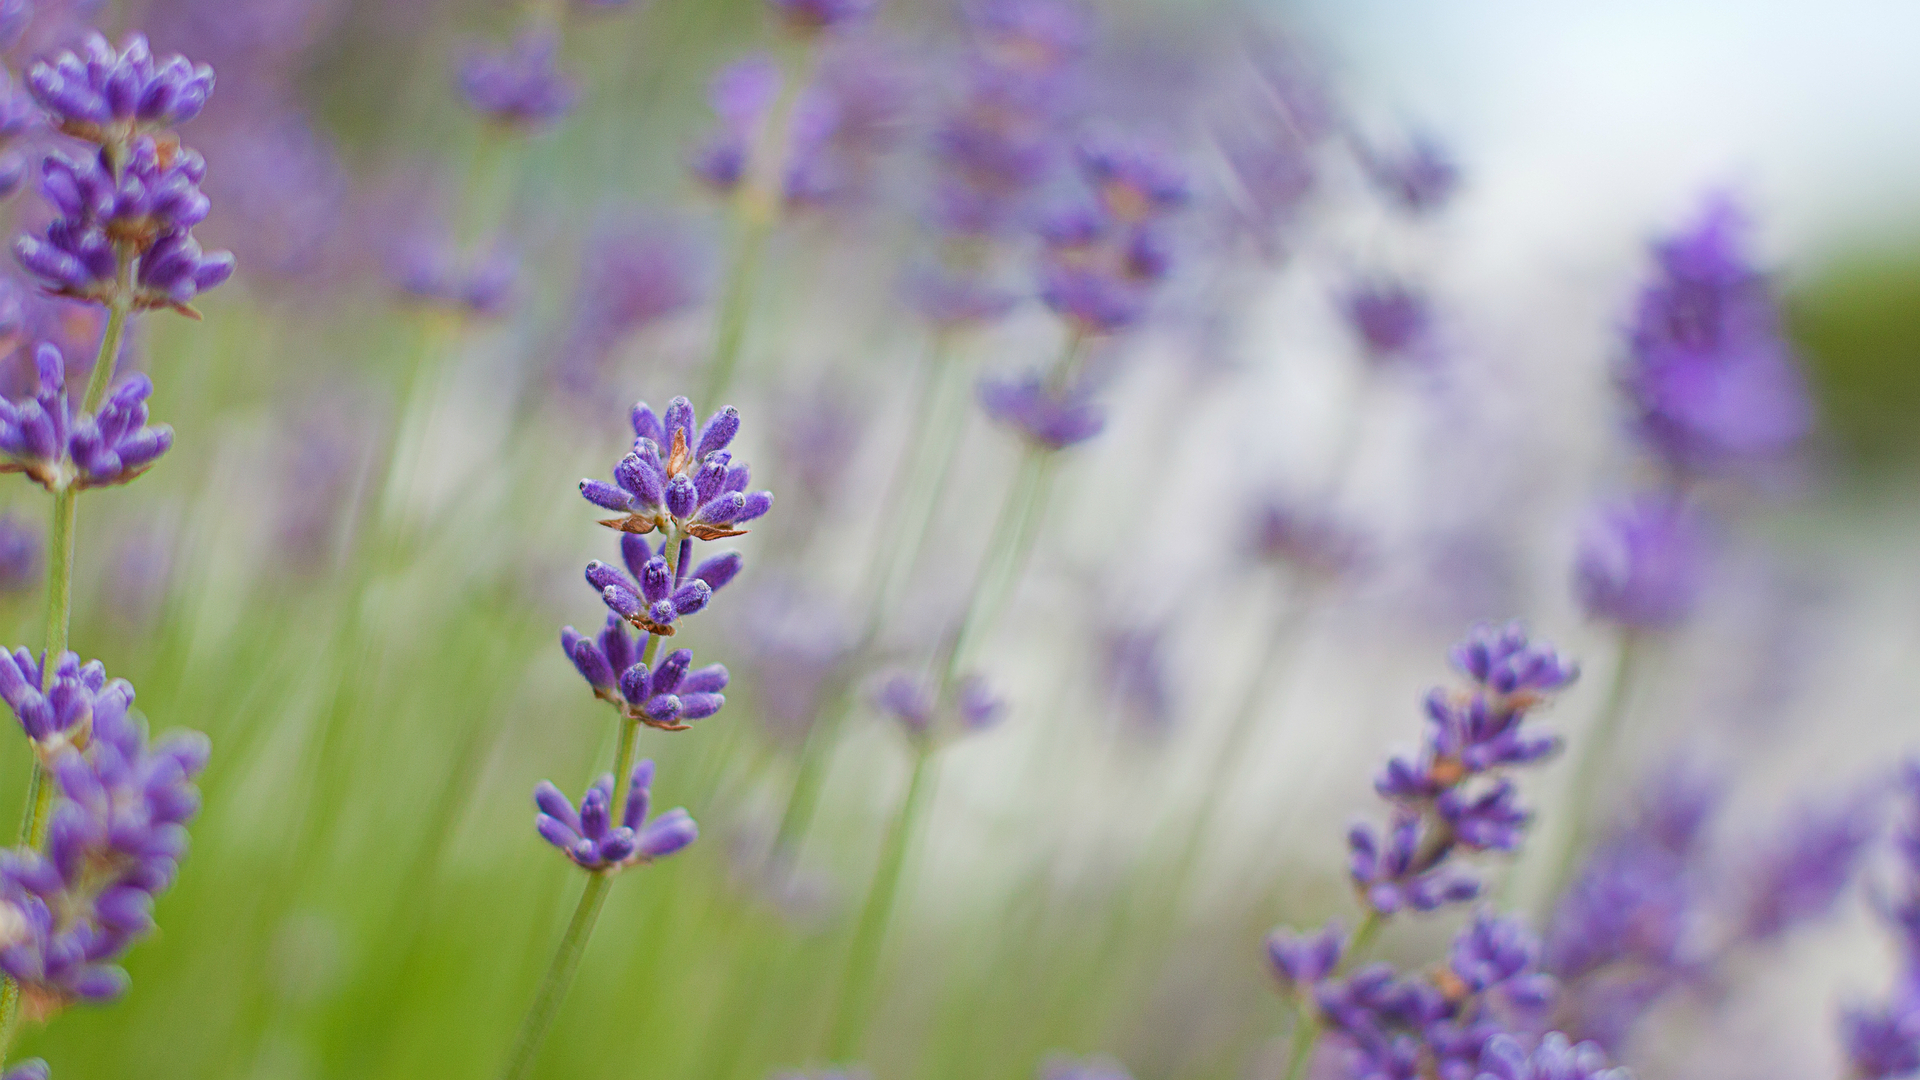 Lavender Flower Wallpaper - WallpaperSafari